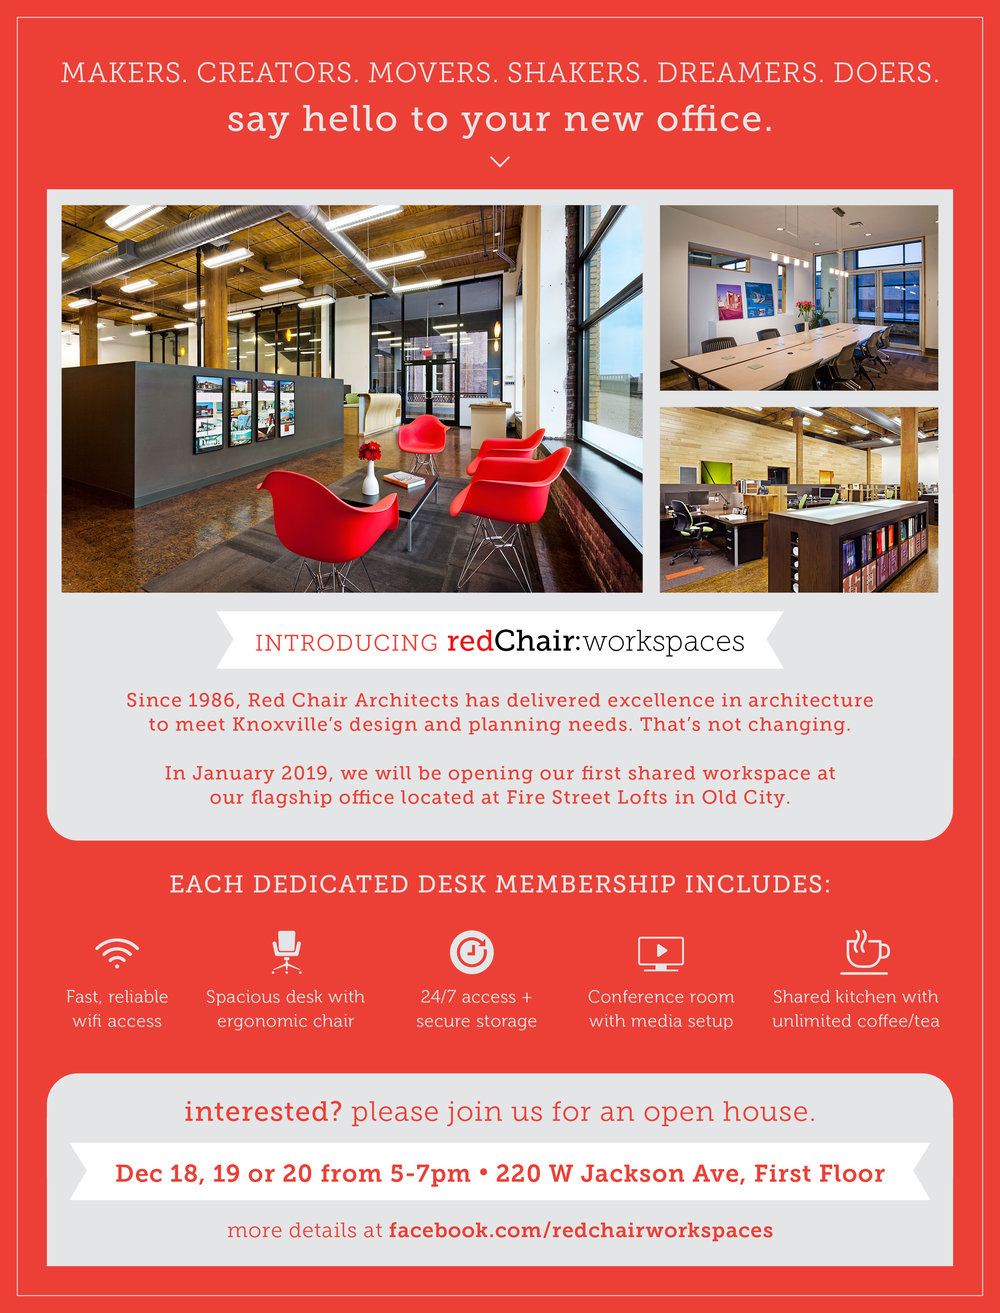 RedChairWorkspaces_Flyer.jpg